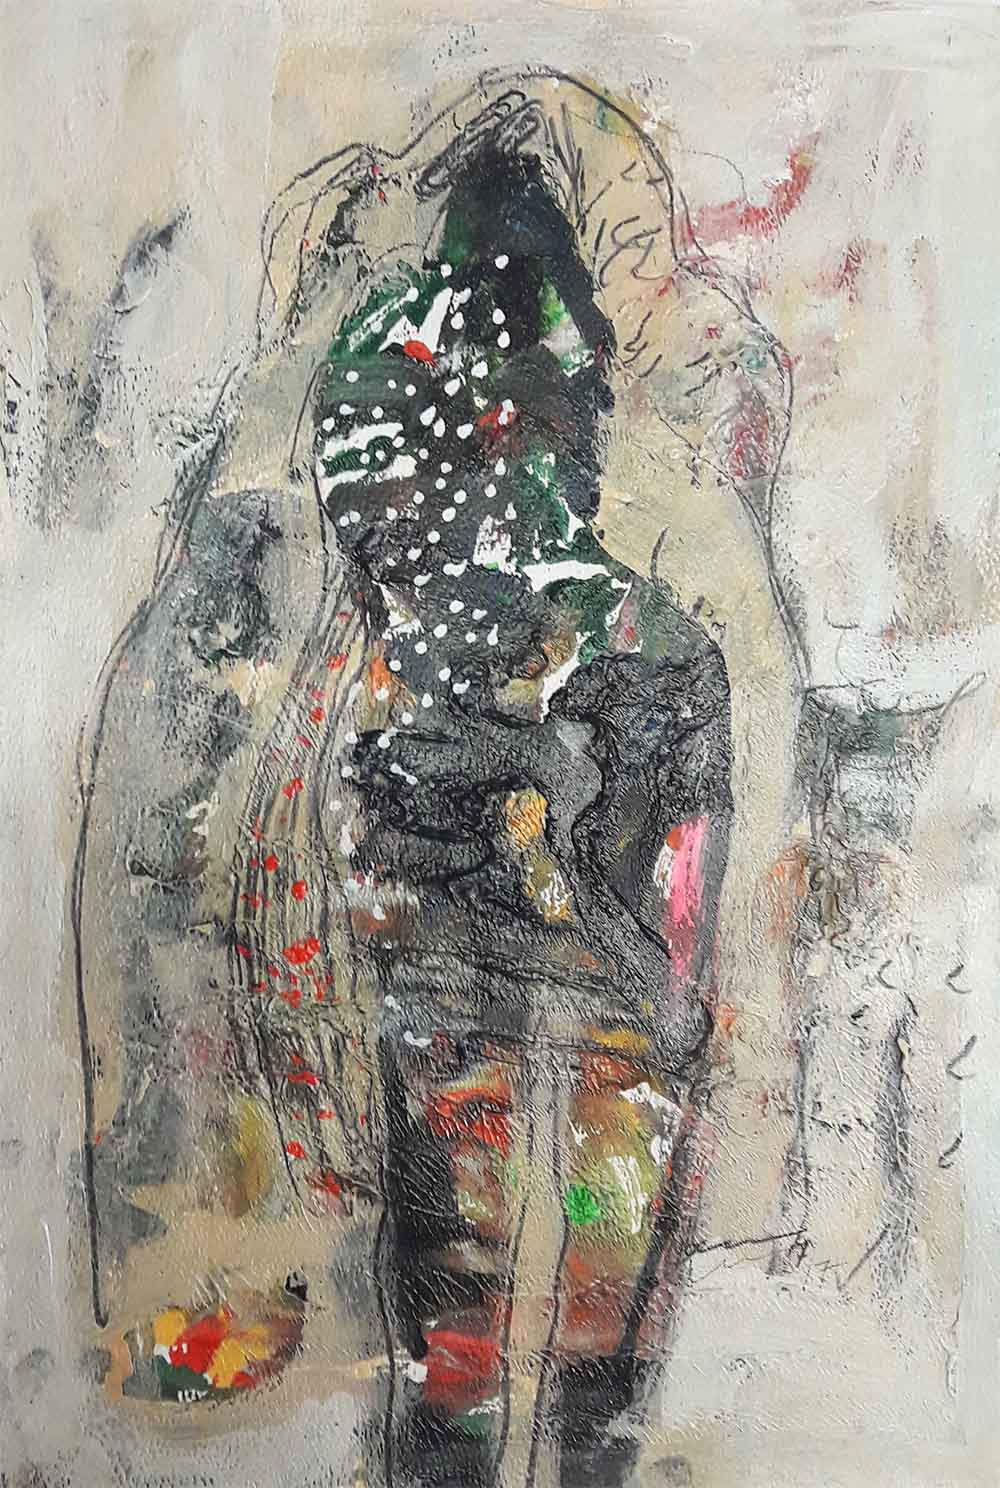 Hussein Salim - untitled(2)(41.5 x 29.5)acrylic on paper